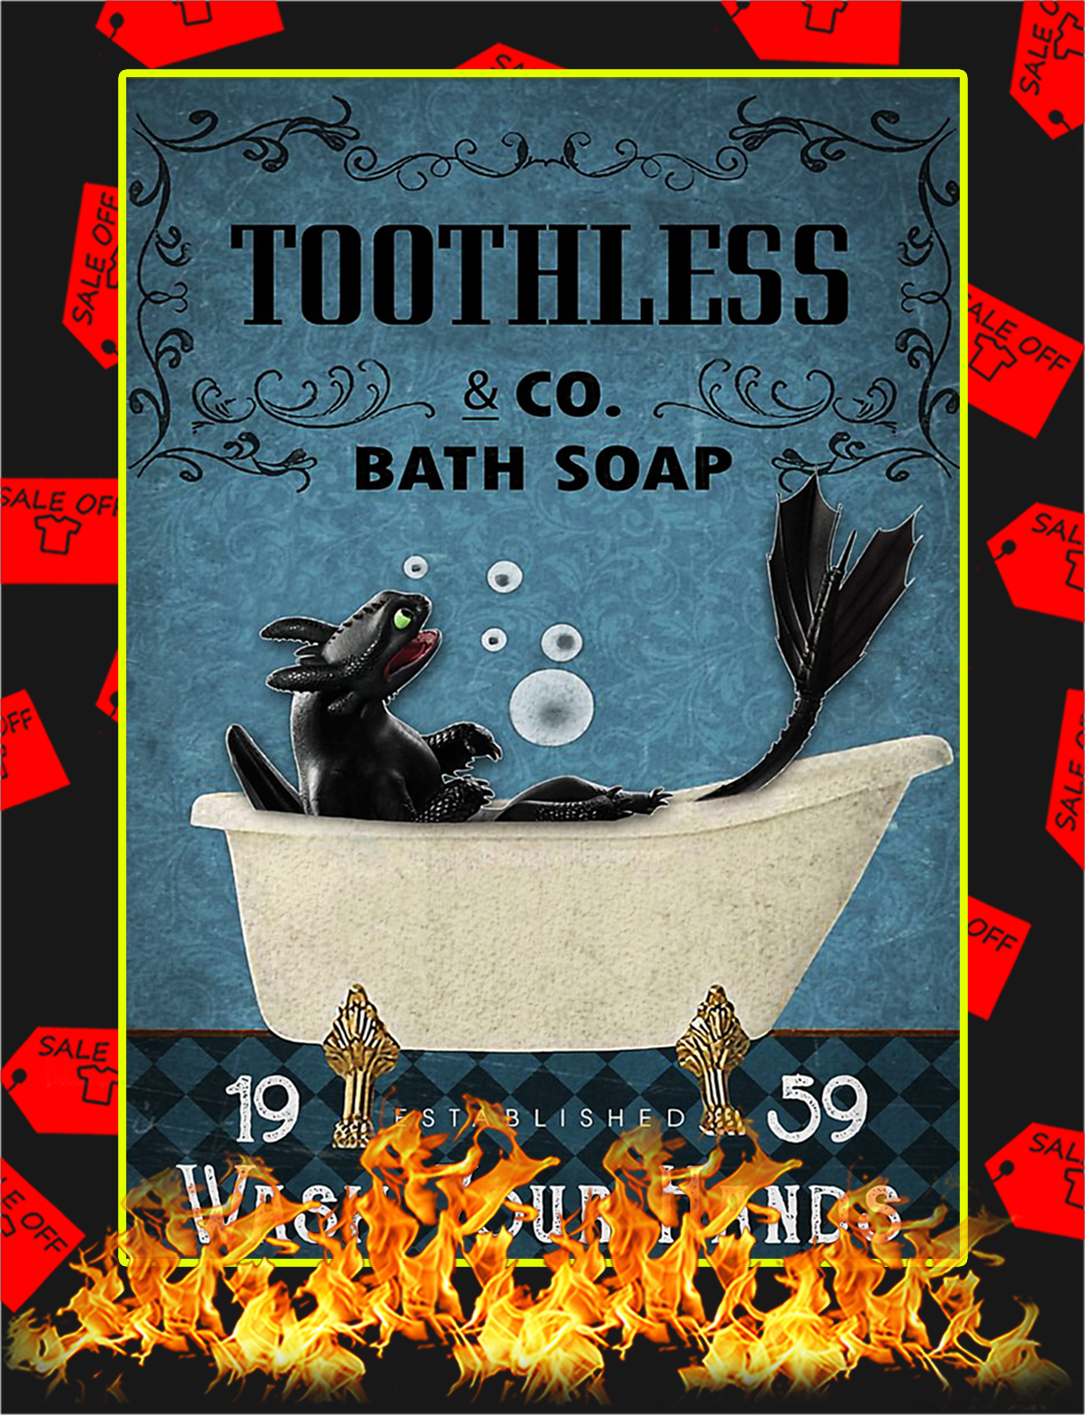 Bath soap company Toothless poster - A3